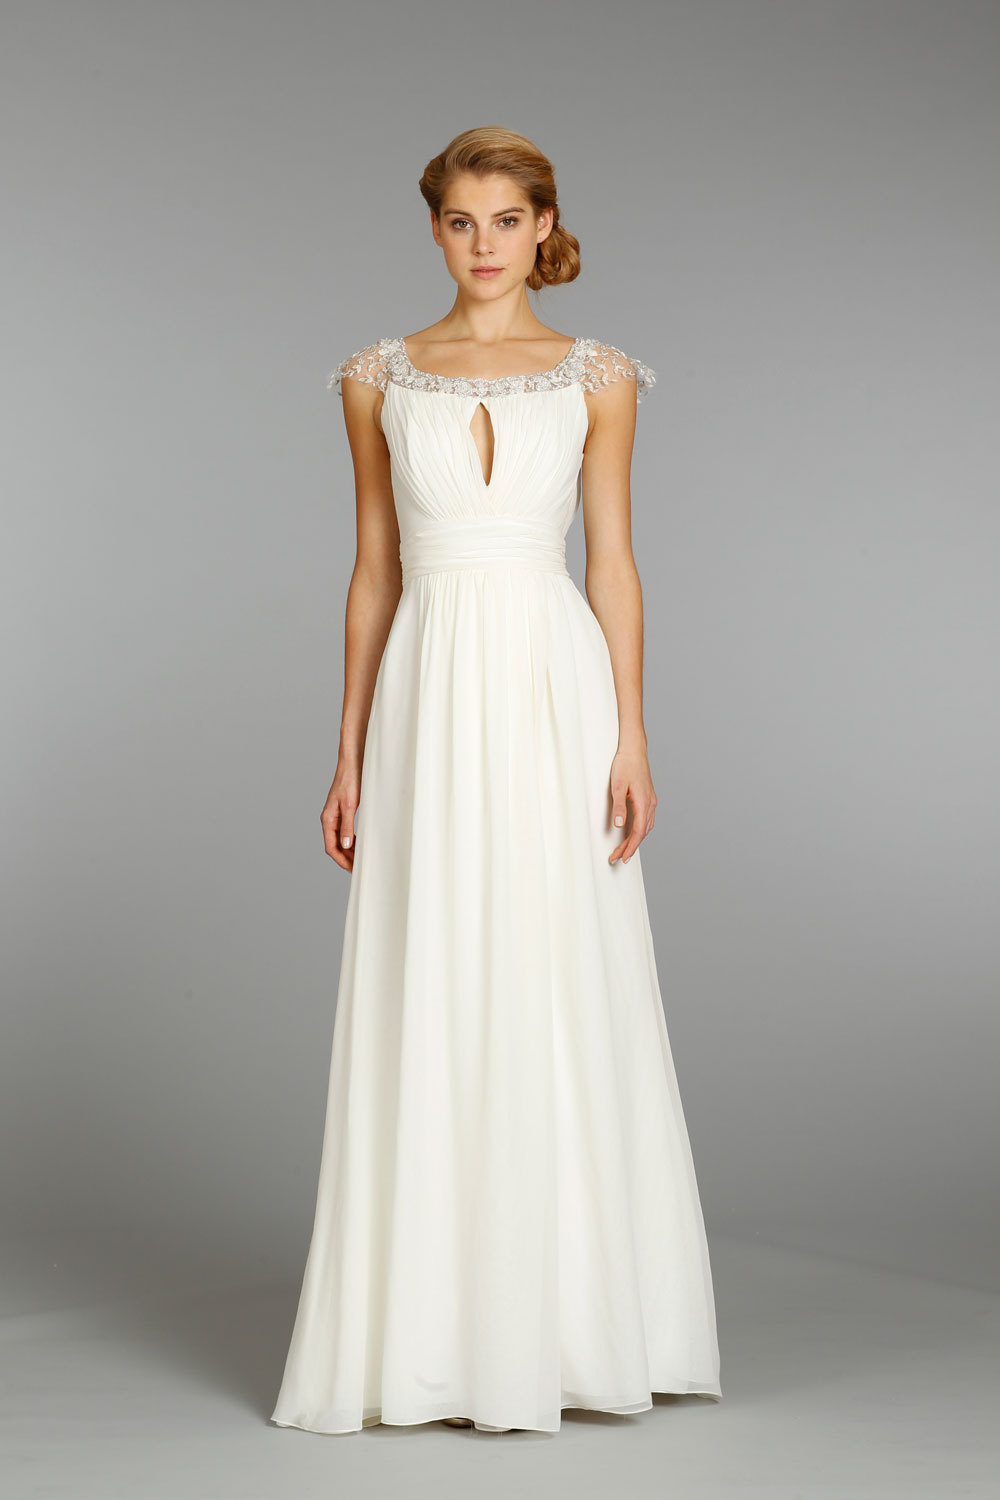 Jim hjelm wedding dress fall 2013 bridal 8354 for Jim hjelm wedding dresses